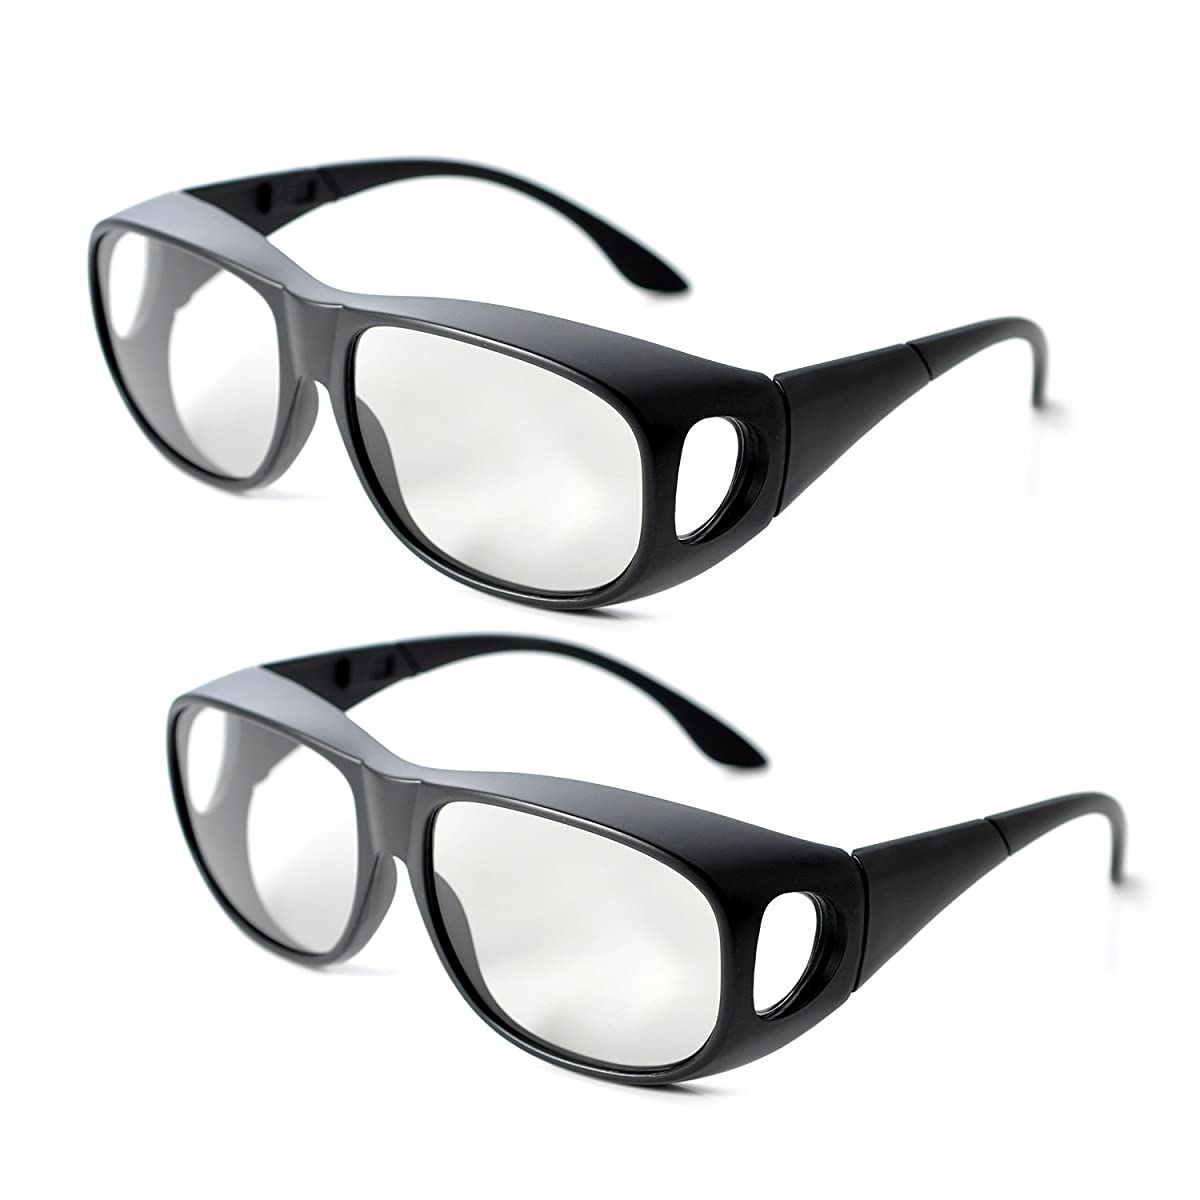 3D Glasses COMBO (1 Pair RealD + 1 Pair IMAX) Passive 3D Big Lens Eyeglasses for Cinema Movie Theatre Home TV